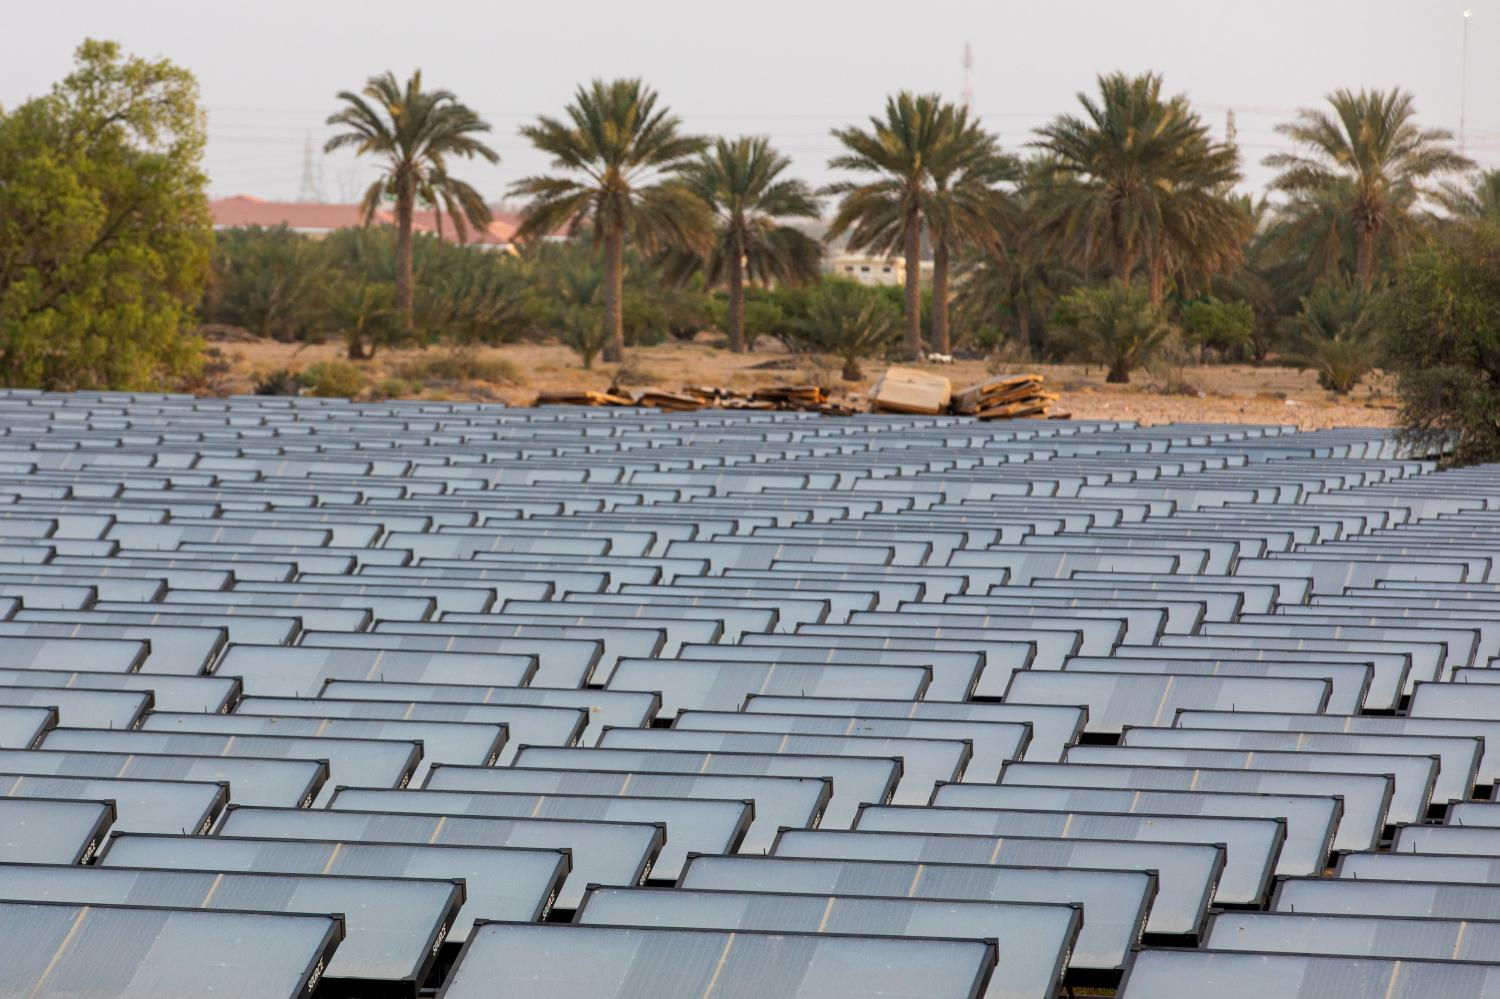 Hydropanels, produced by Zero Mass, stand at the planned site of the IBV drinking water plant in Lehbab, Dubai.(Photos: Bloomberg)